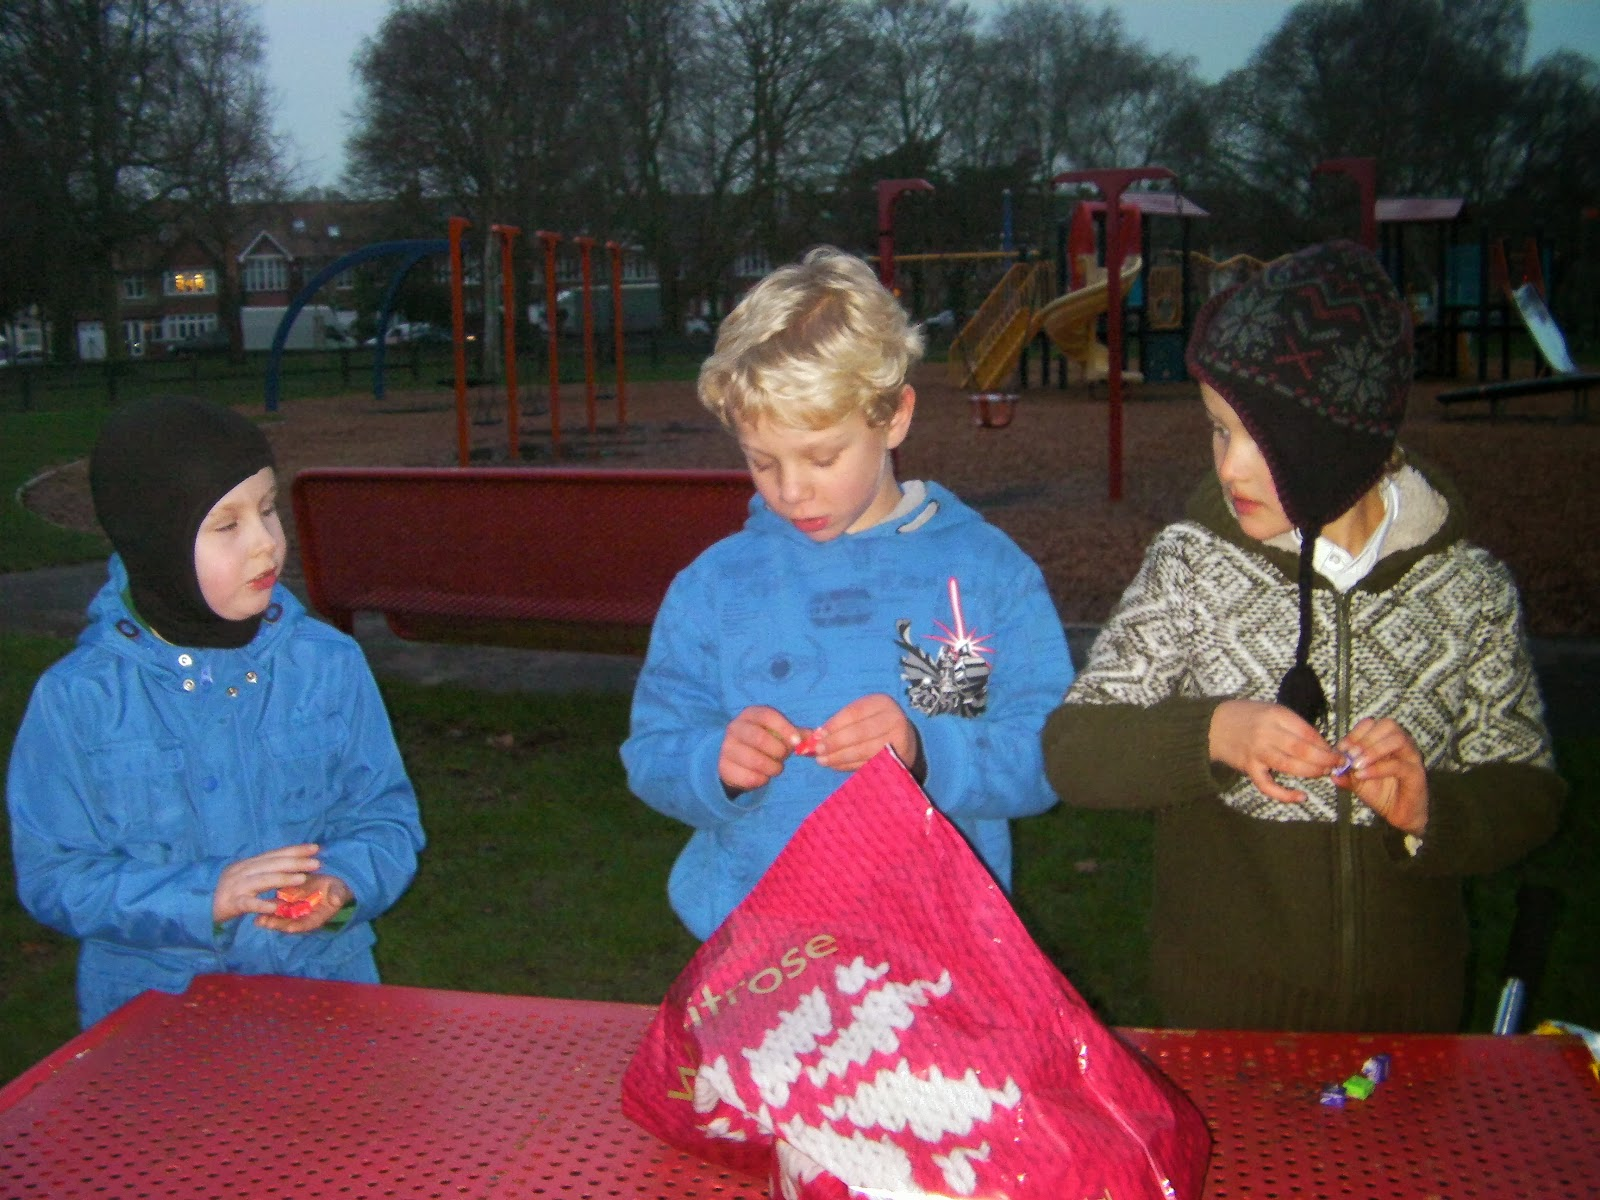 winter clothes at dusk sharing out starburst sweets